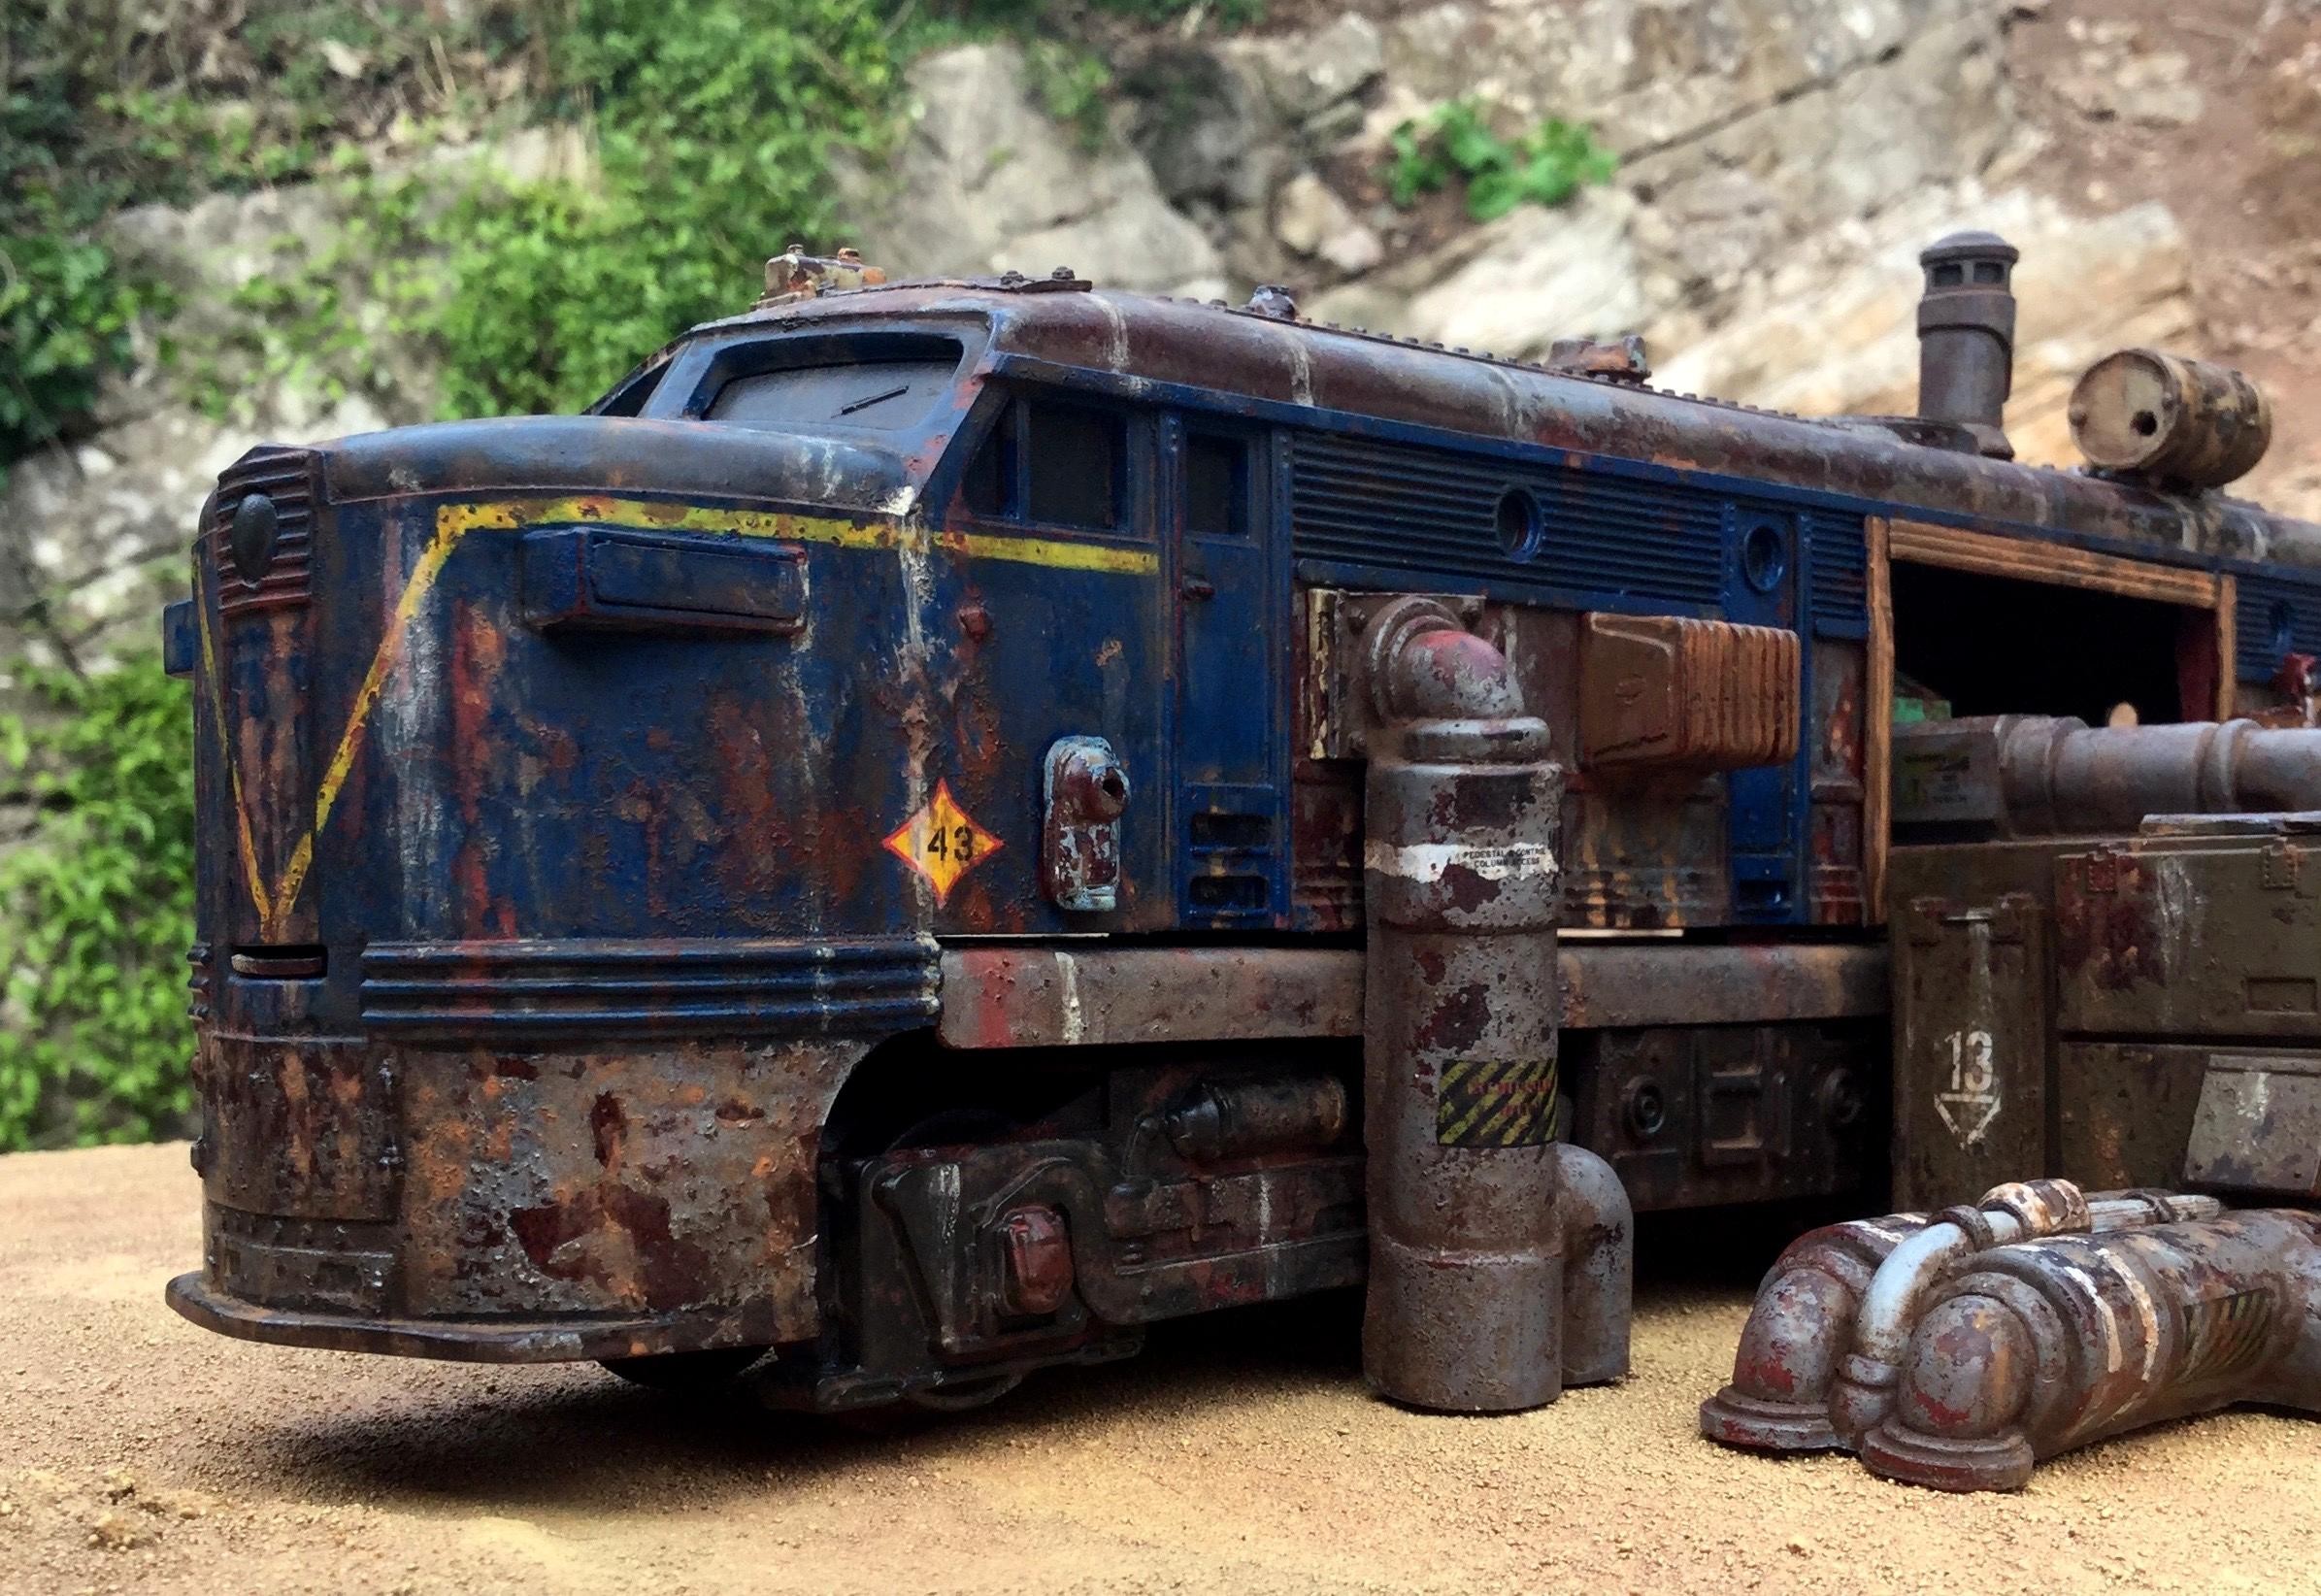 Junk, Locomotive, Terrain, Train